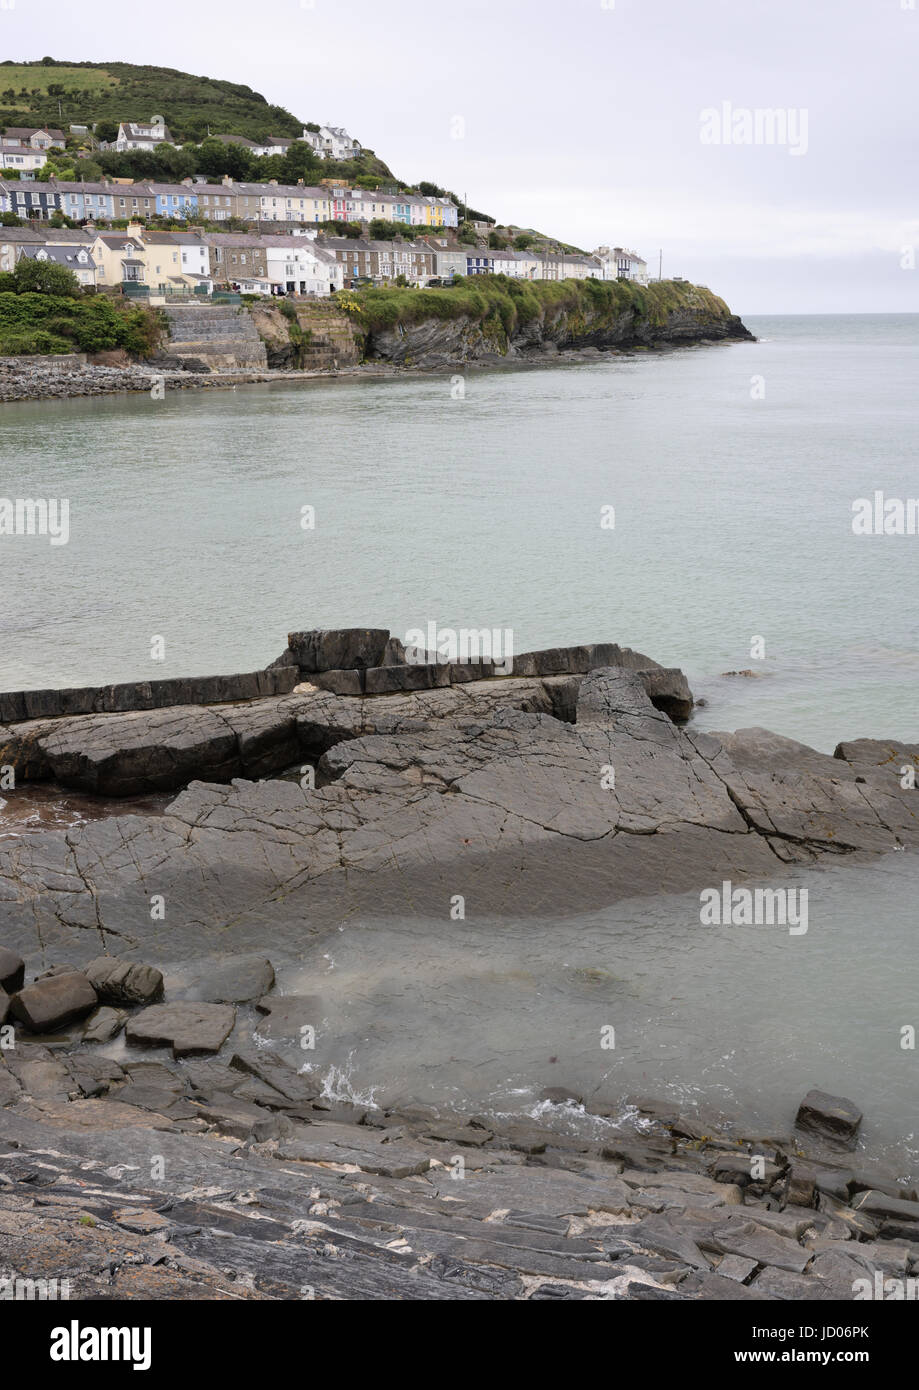 Rock formation and headland at New quay cardigan bay wales - Stock Image